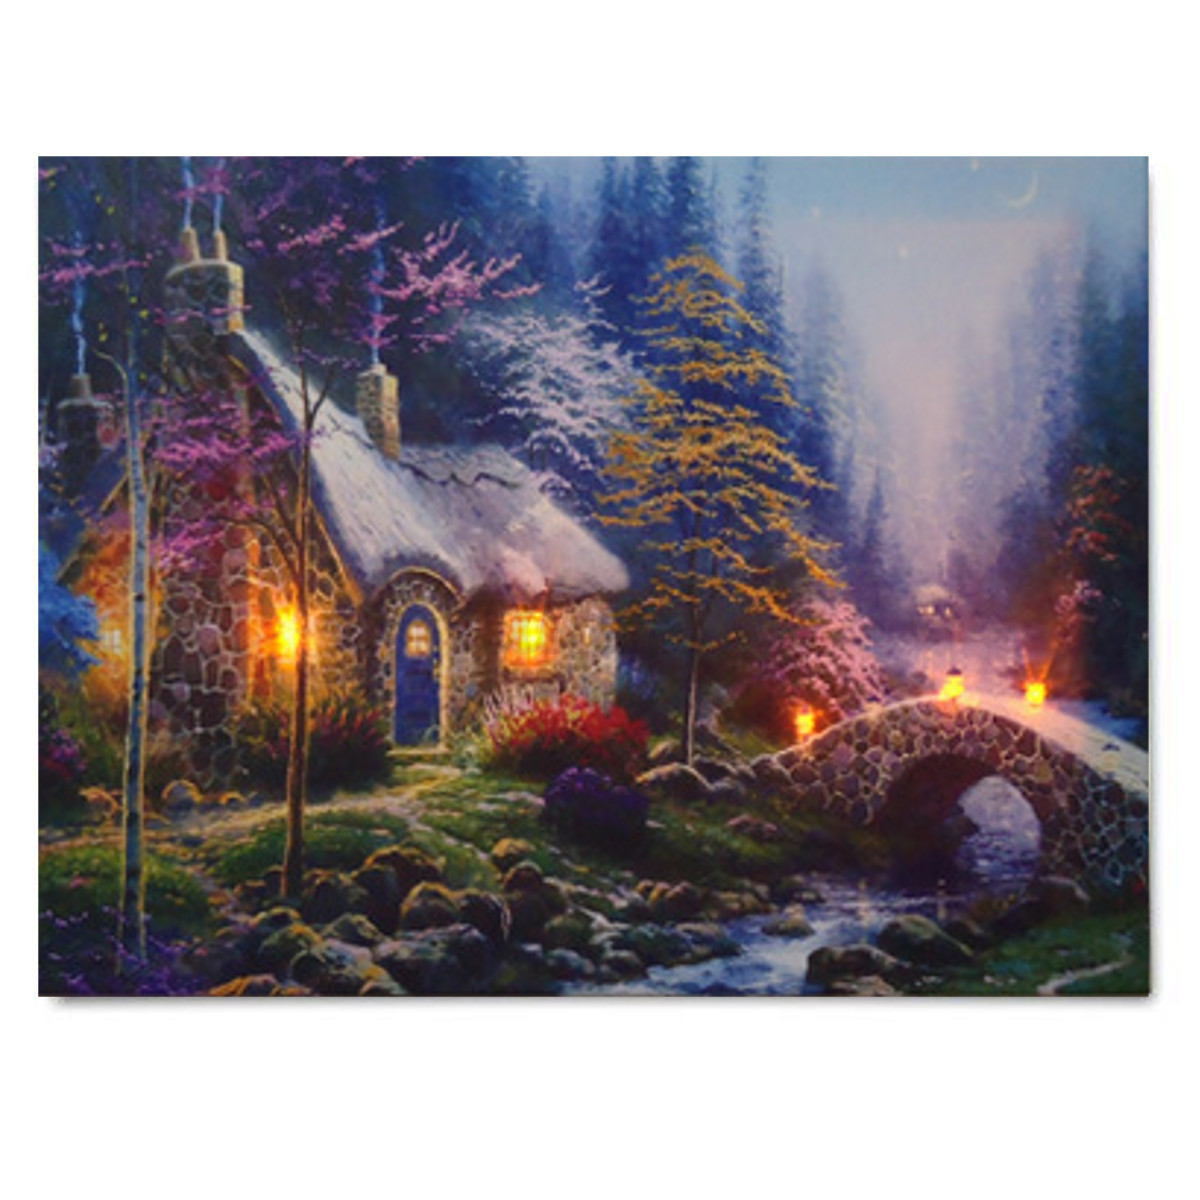 led forest house light up lighted canvas painting picture wall art home decor ebay. Black Bedroom Furniture Sets. Home Design Ideas